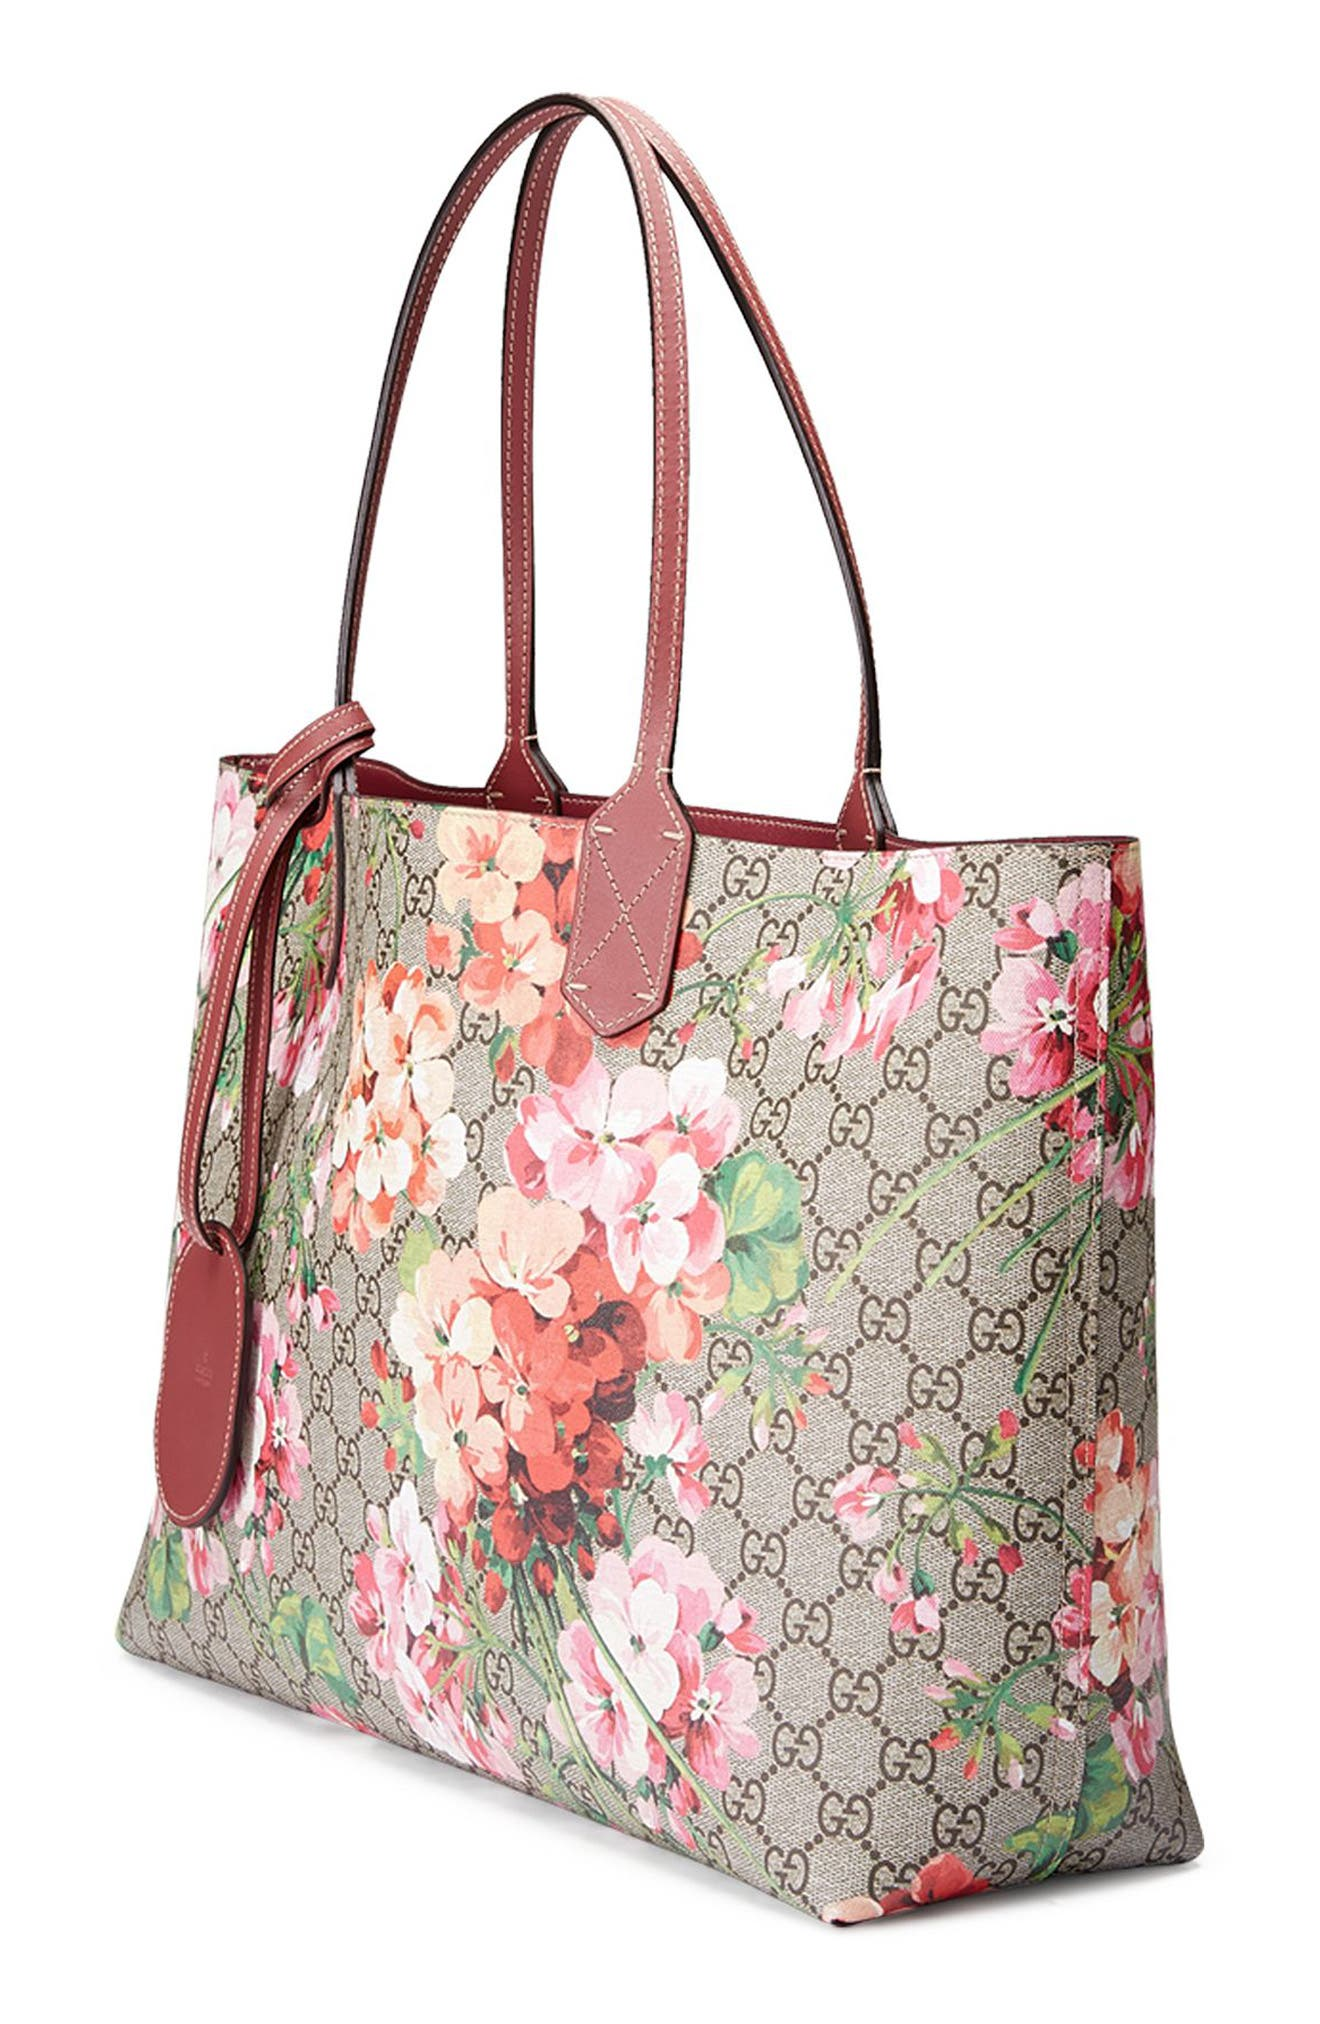 GUCCI, Medium GG Blooms Reversible Canvas & Leather Tote, Alternate thumbnail 3, color, 291